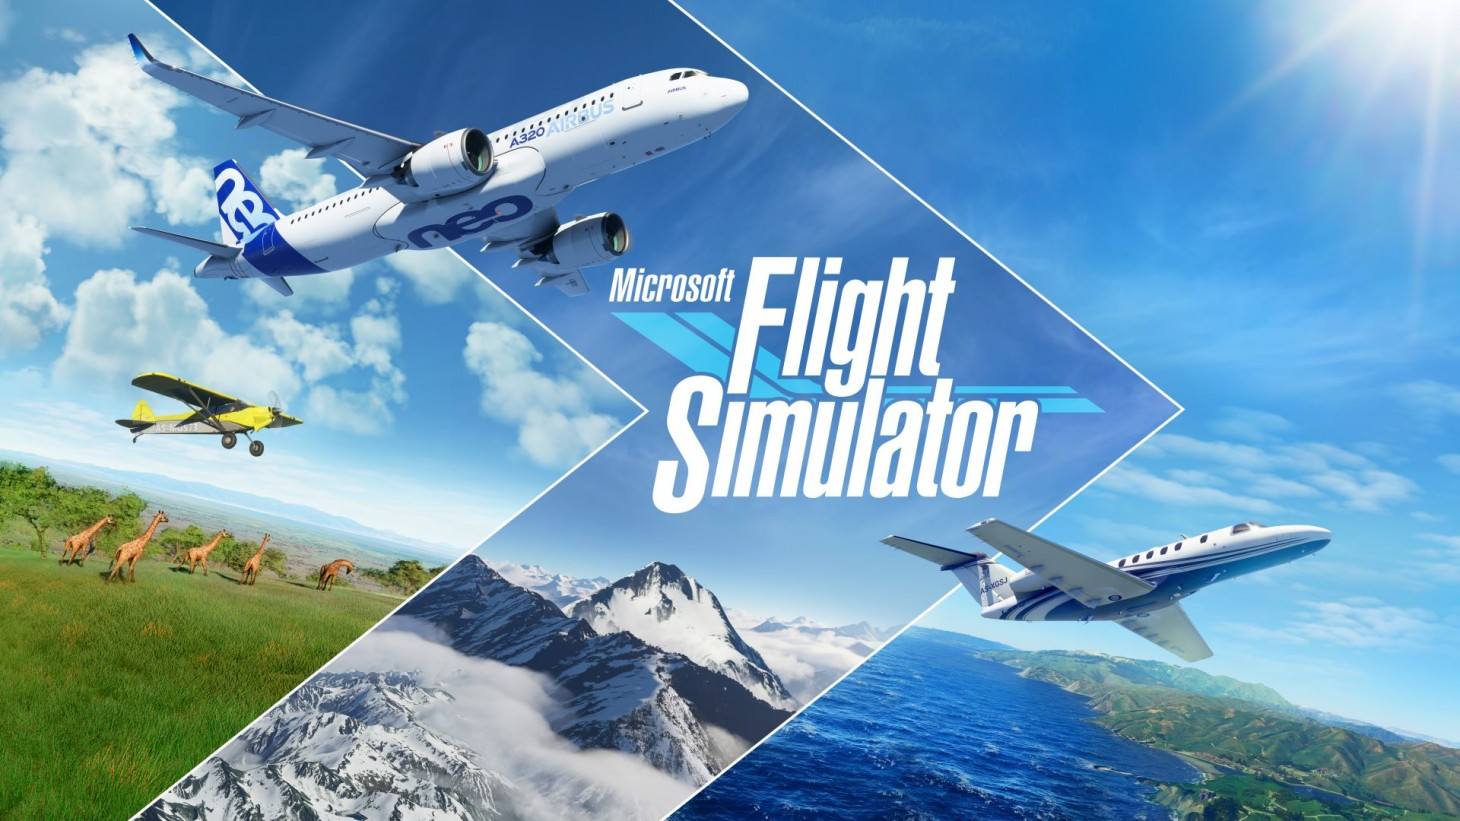 Fly High With Microsoft Flight Simulator On PC August 18 ...